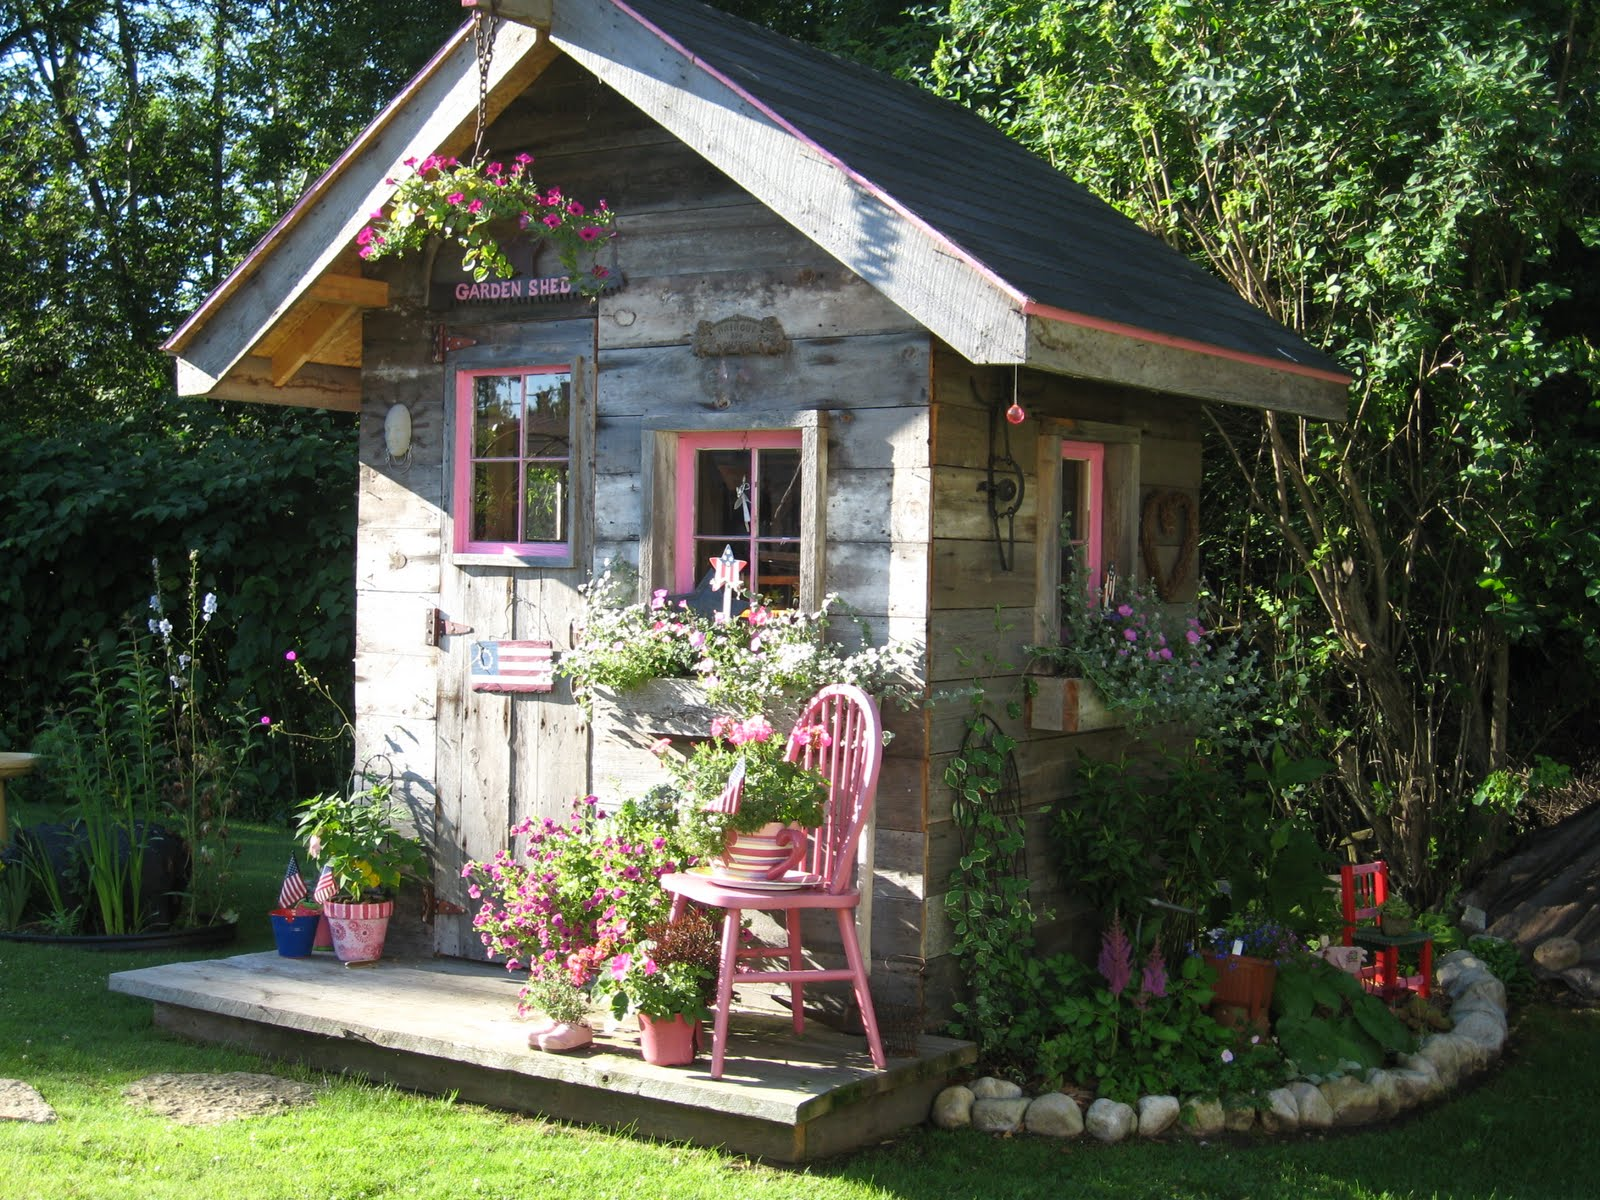 20 wendy houses for the peter pan in you for Garden shed small